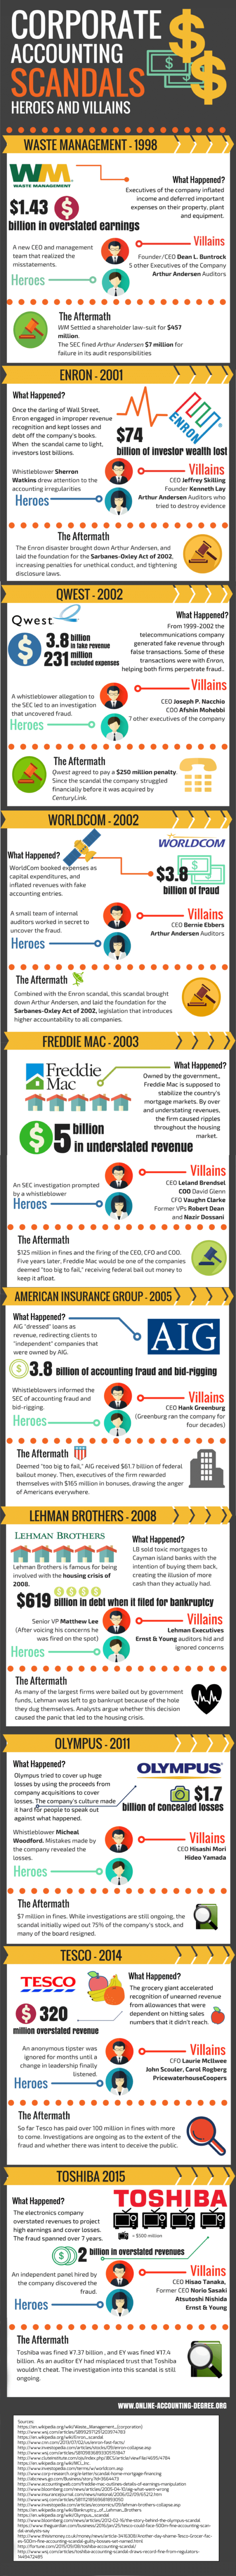 Biggest corporate accounting scandals infographic rgb